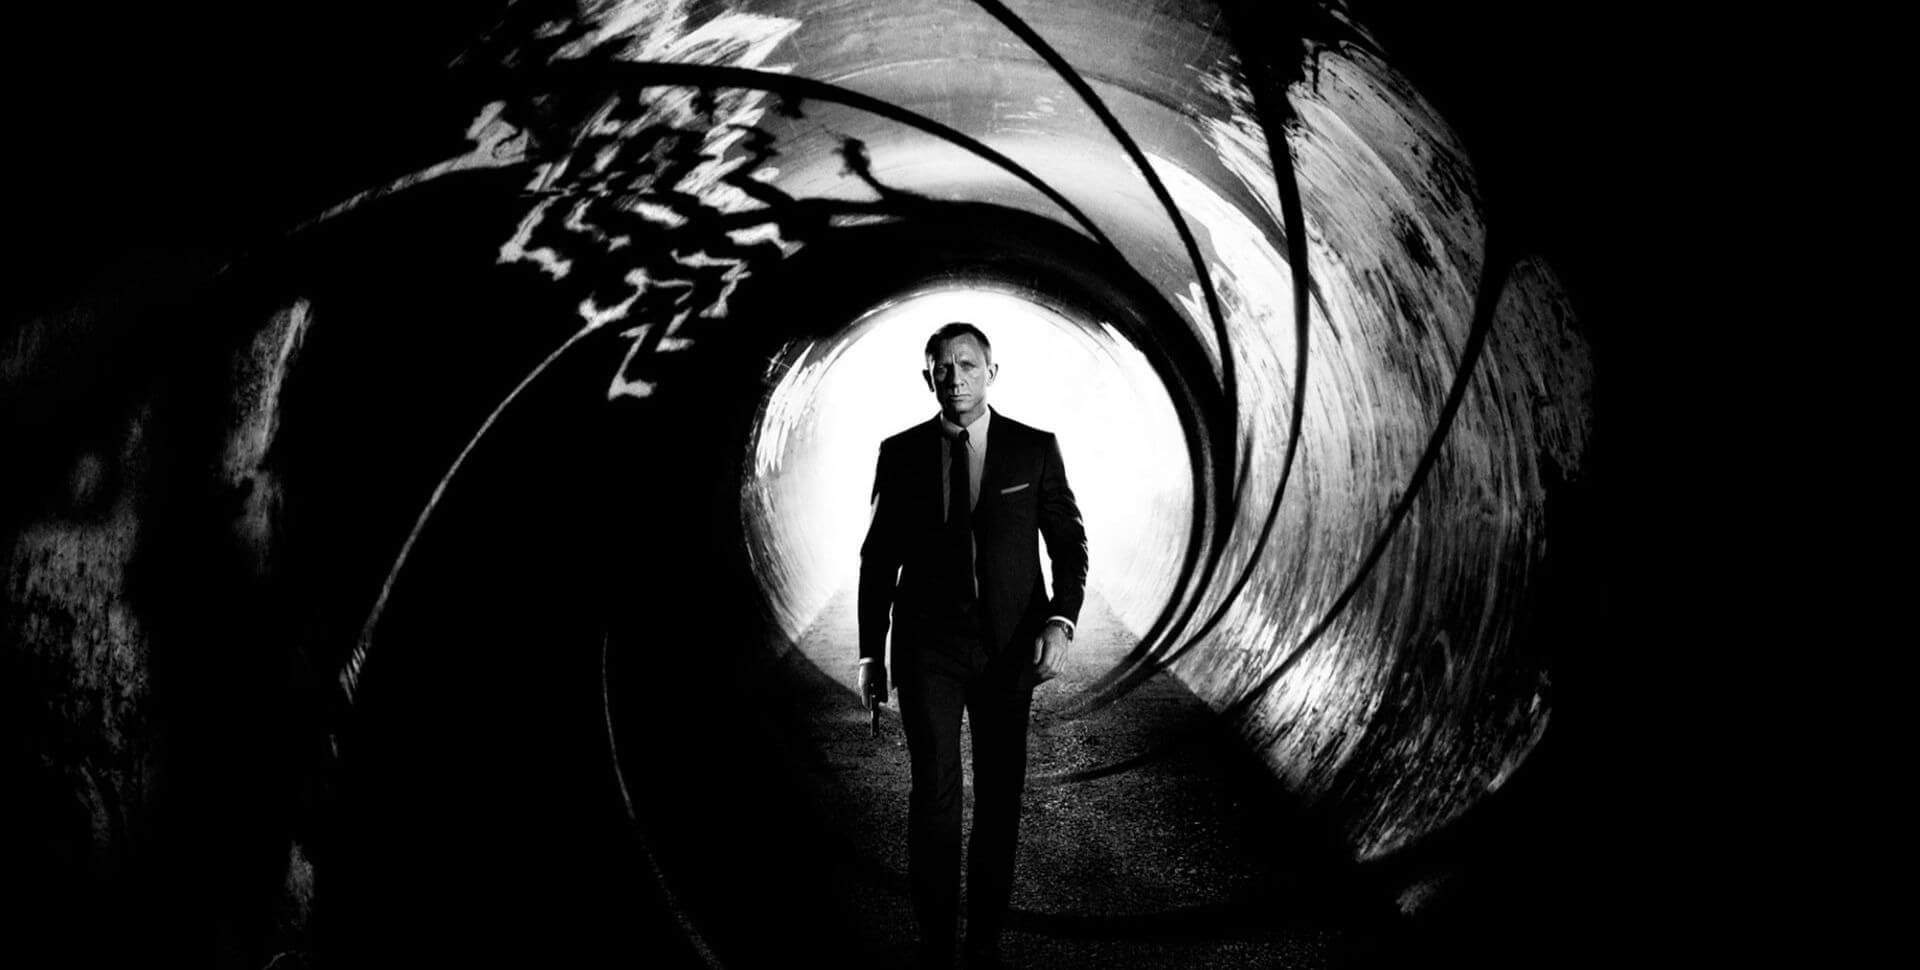 Skyfall 2012 Spoiler Free Movie Review